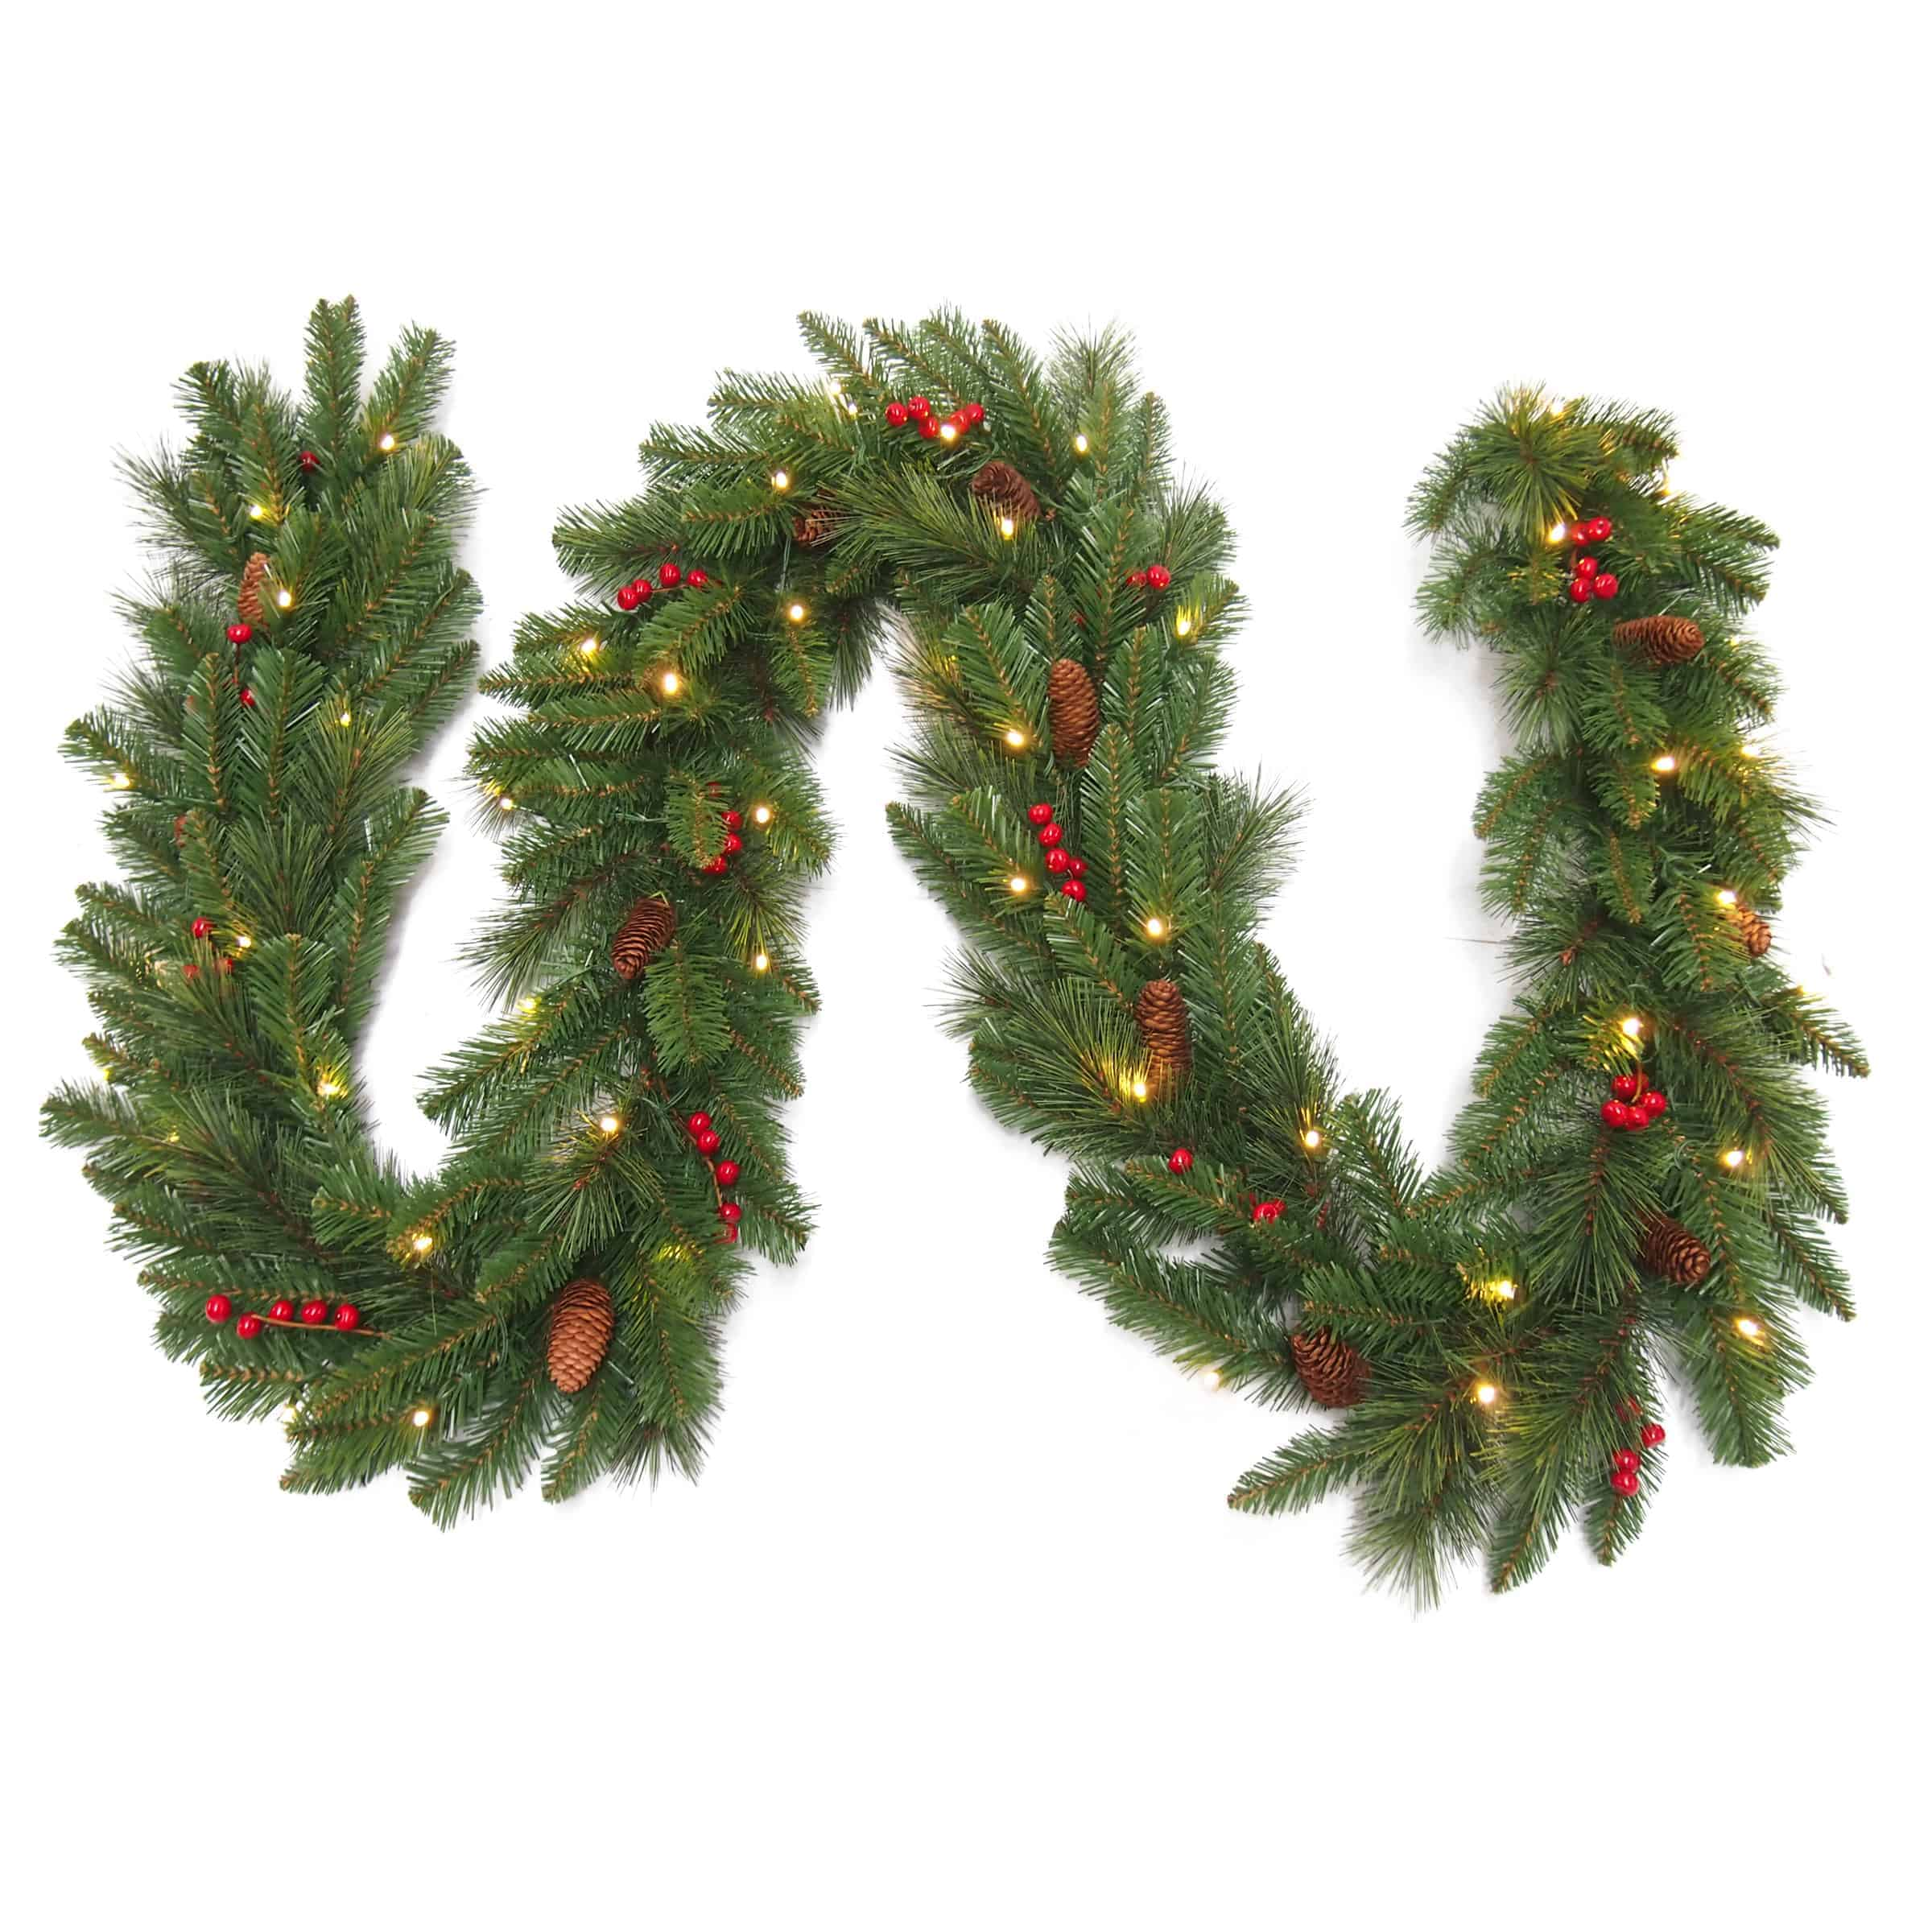 Christmas Garlands.9ft Christmas Garland With Pine Cones Red Berries Pre Lit